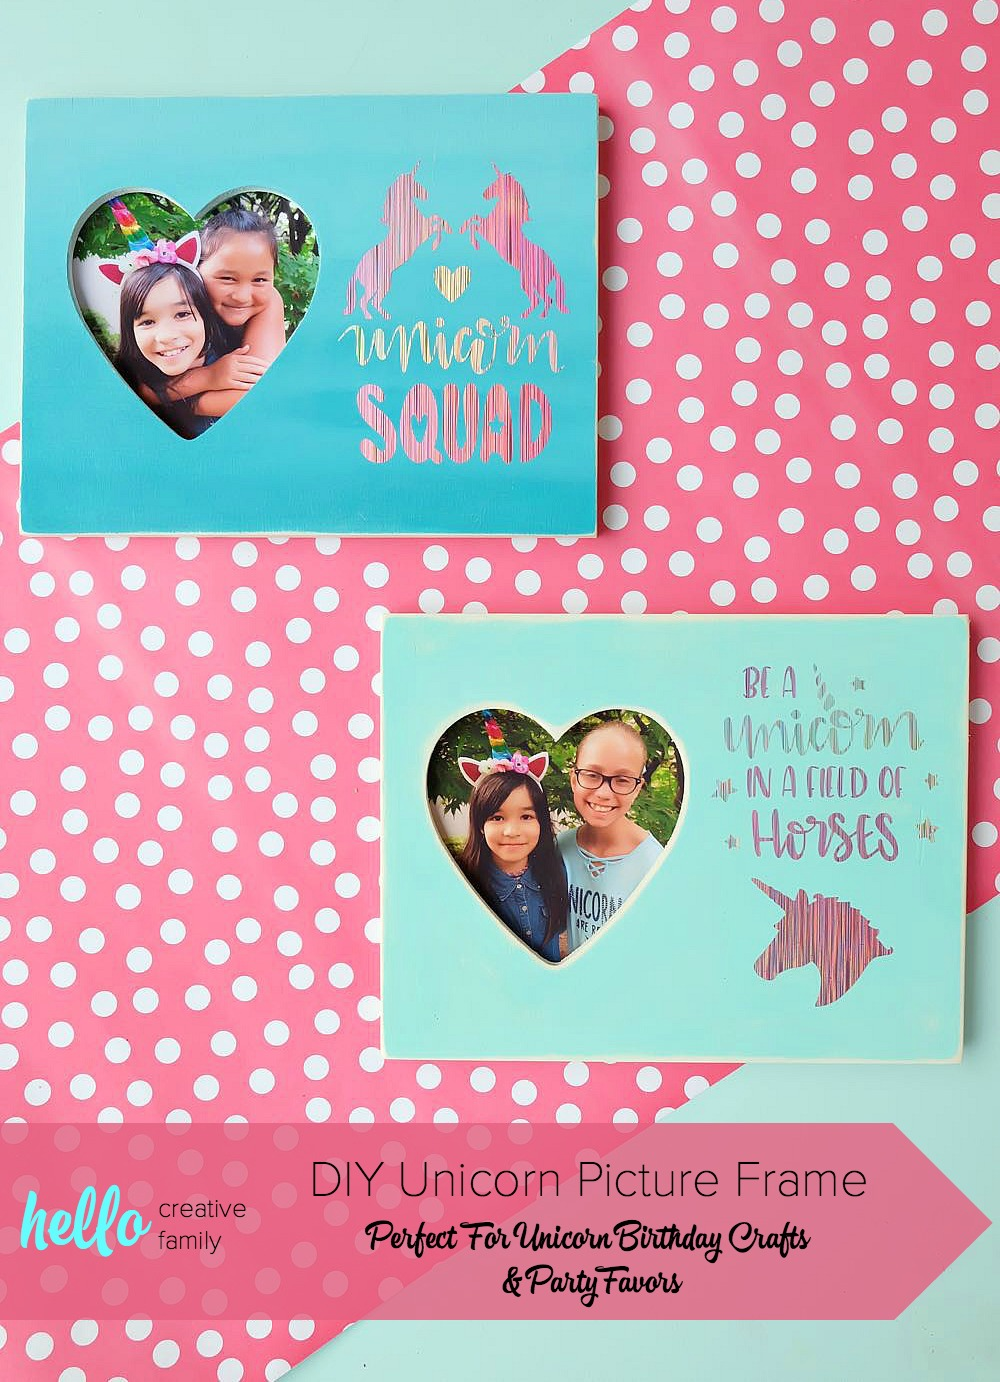 Throwing a unicorn themed birthday party? This DIY Unicorn Picture Frame double as a birthday party craft and a party favor idea! Do a photo shoot with the birthday child with each of their friends to put inside. An easy and inexpensive idea! #BirthdayParty #cricut #Unicorns #DIY